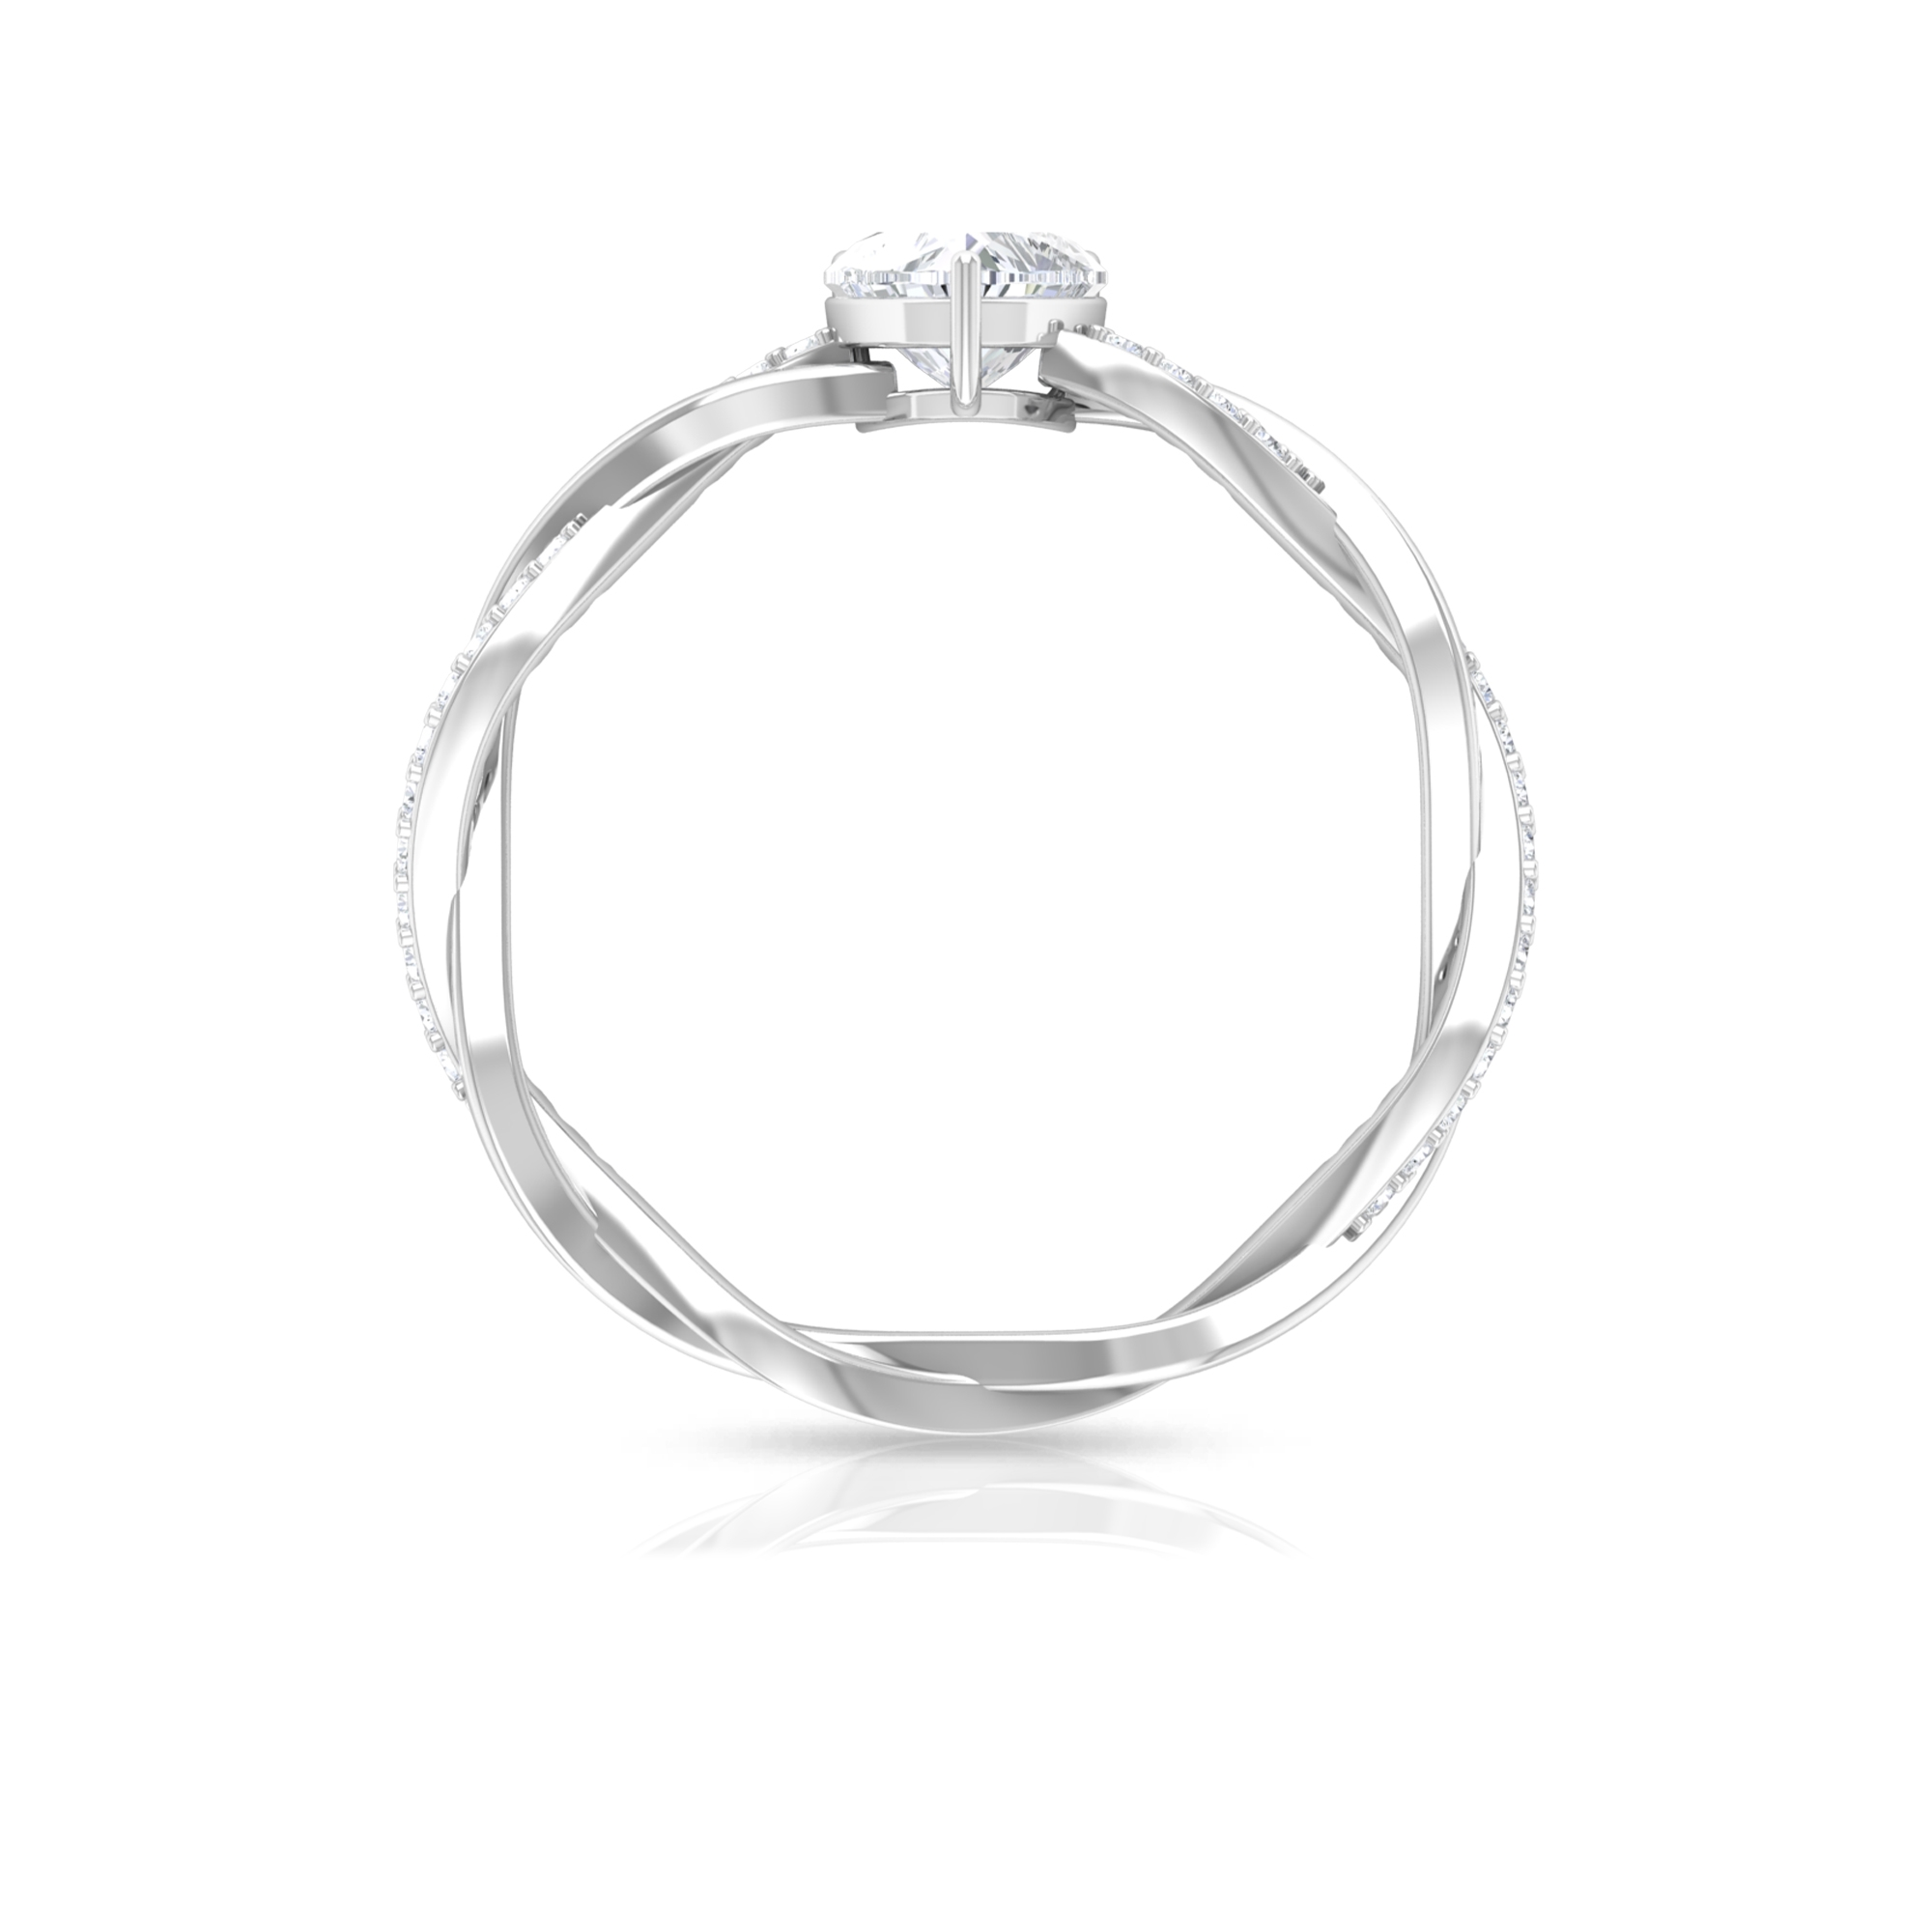 3/4 CT Heart Shape Solitaire Diamond Braided Ring in 3 Prong Basket Setting